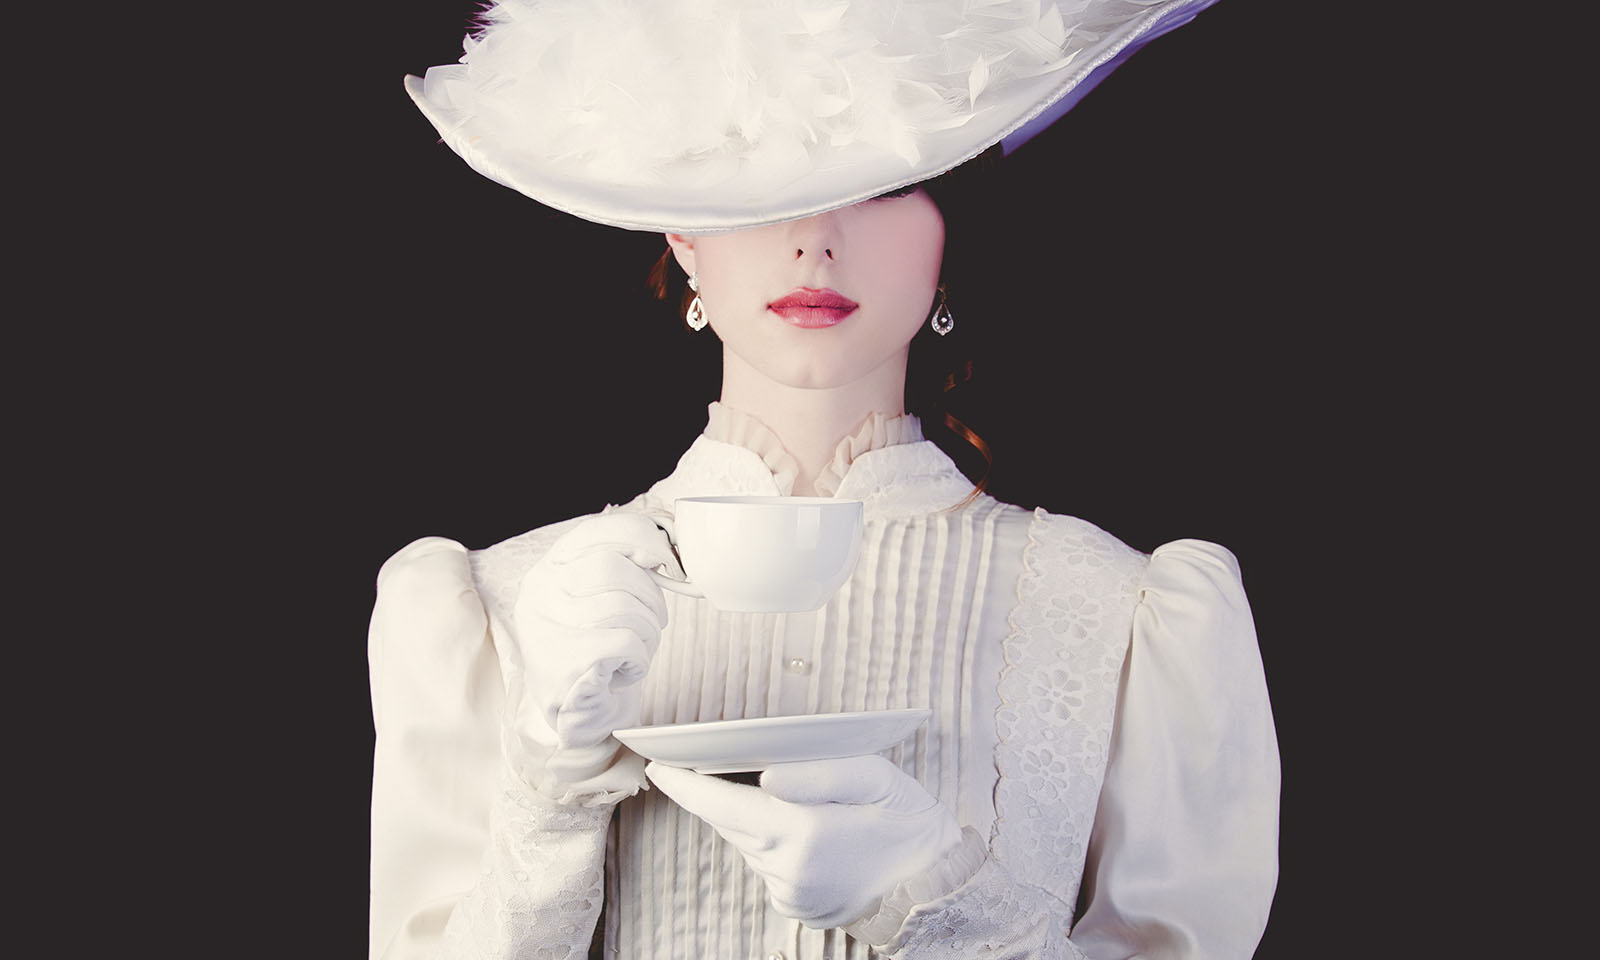 classic-style-forever-main-image-katarina-van-derham-woman-in-white-classic-outfit-with-tea-cup